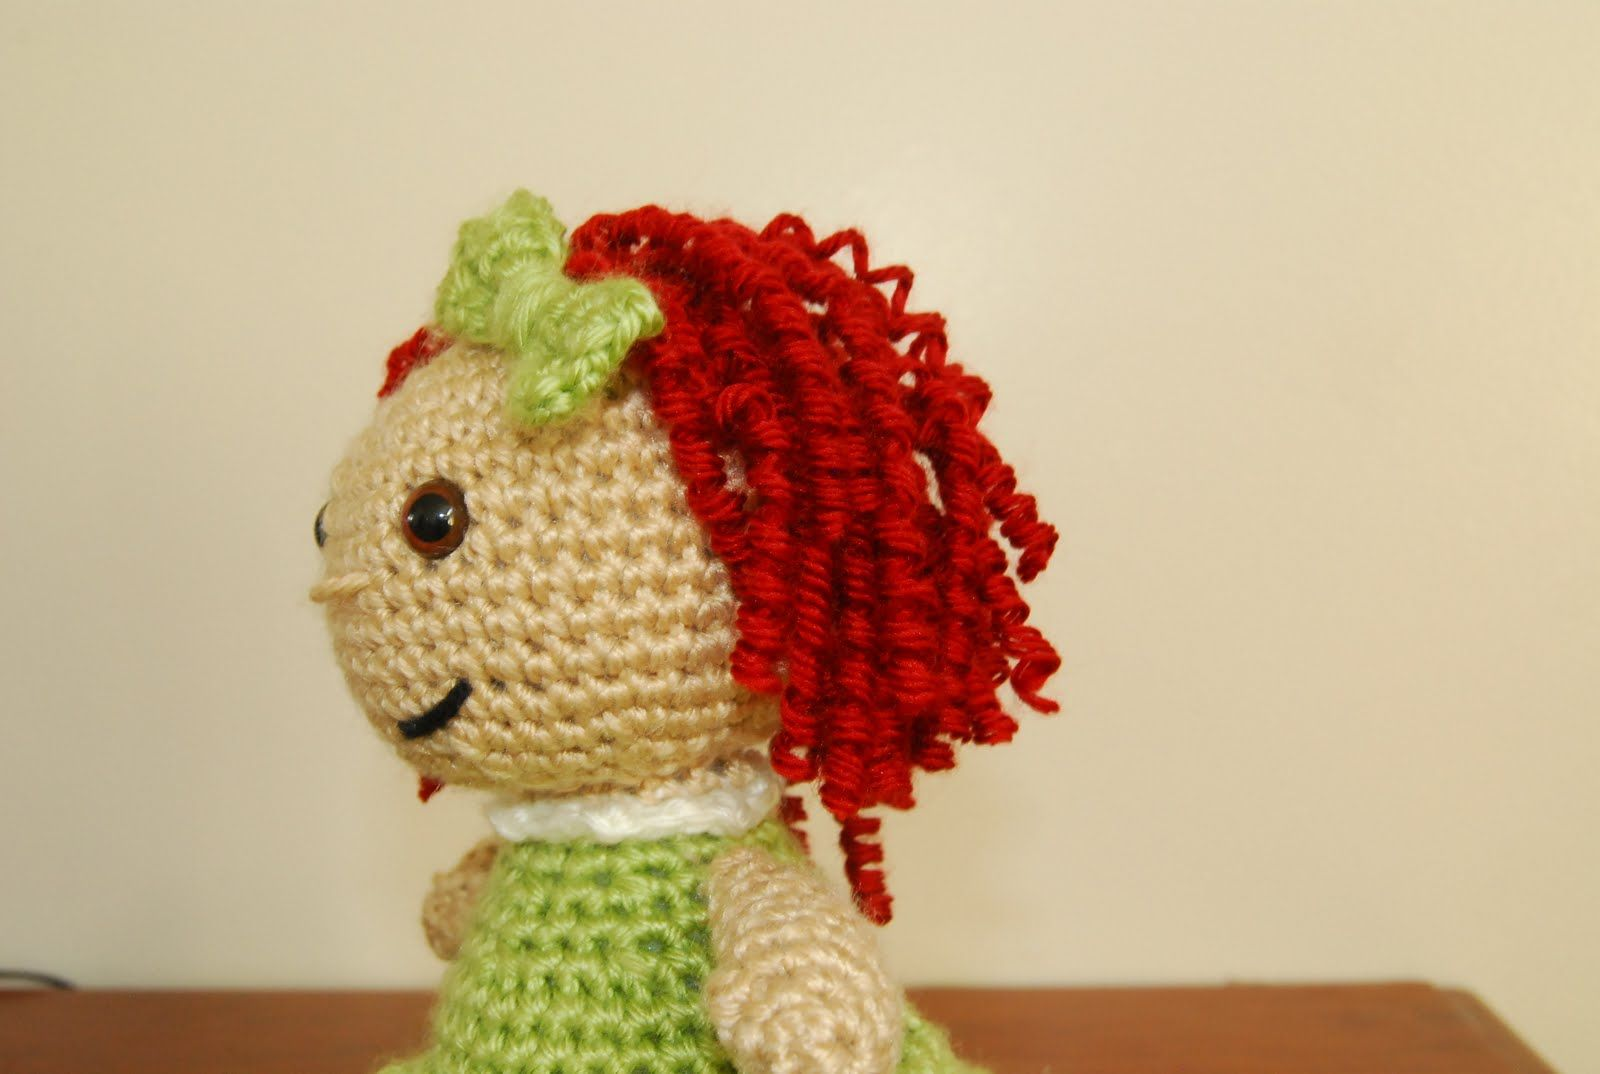 Amigurumi Curly Doll : Easy way to curl yarn make curly hair for amigurumi